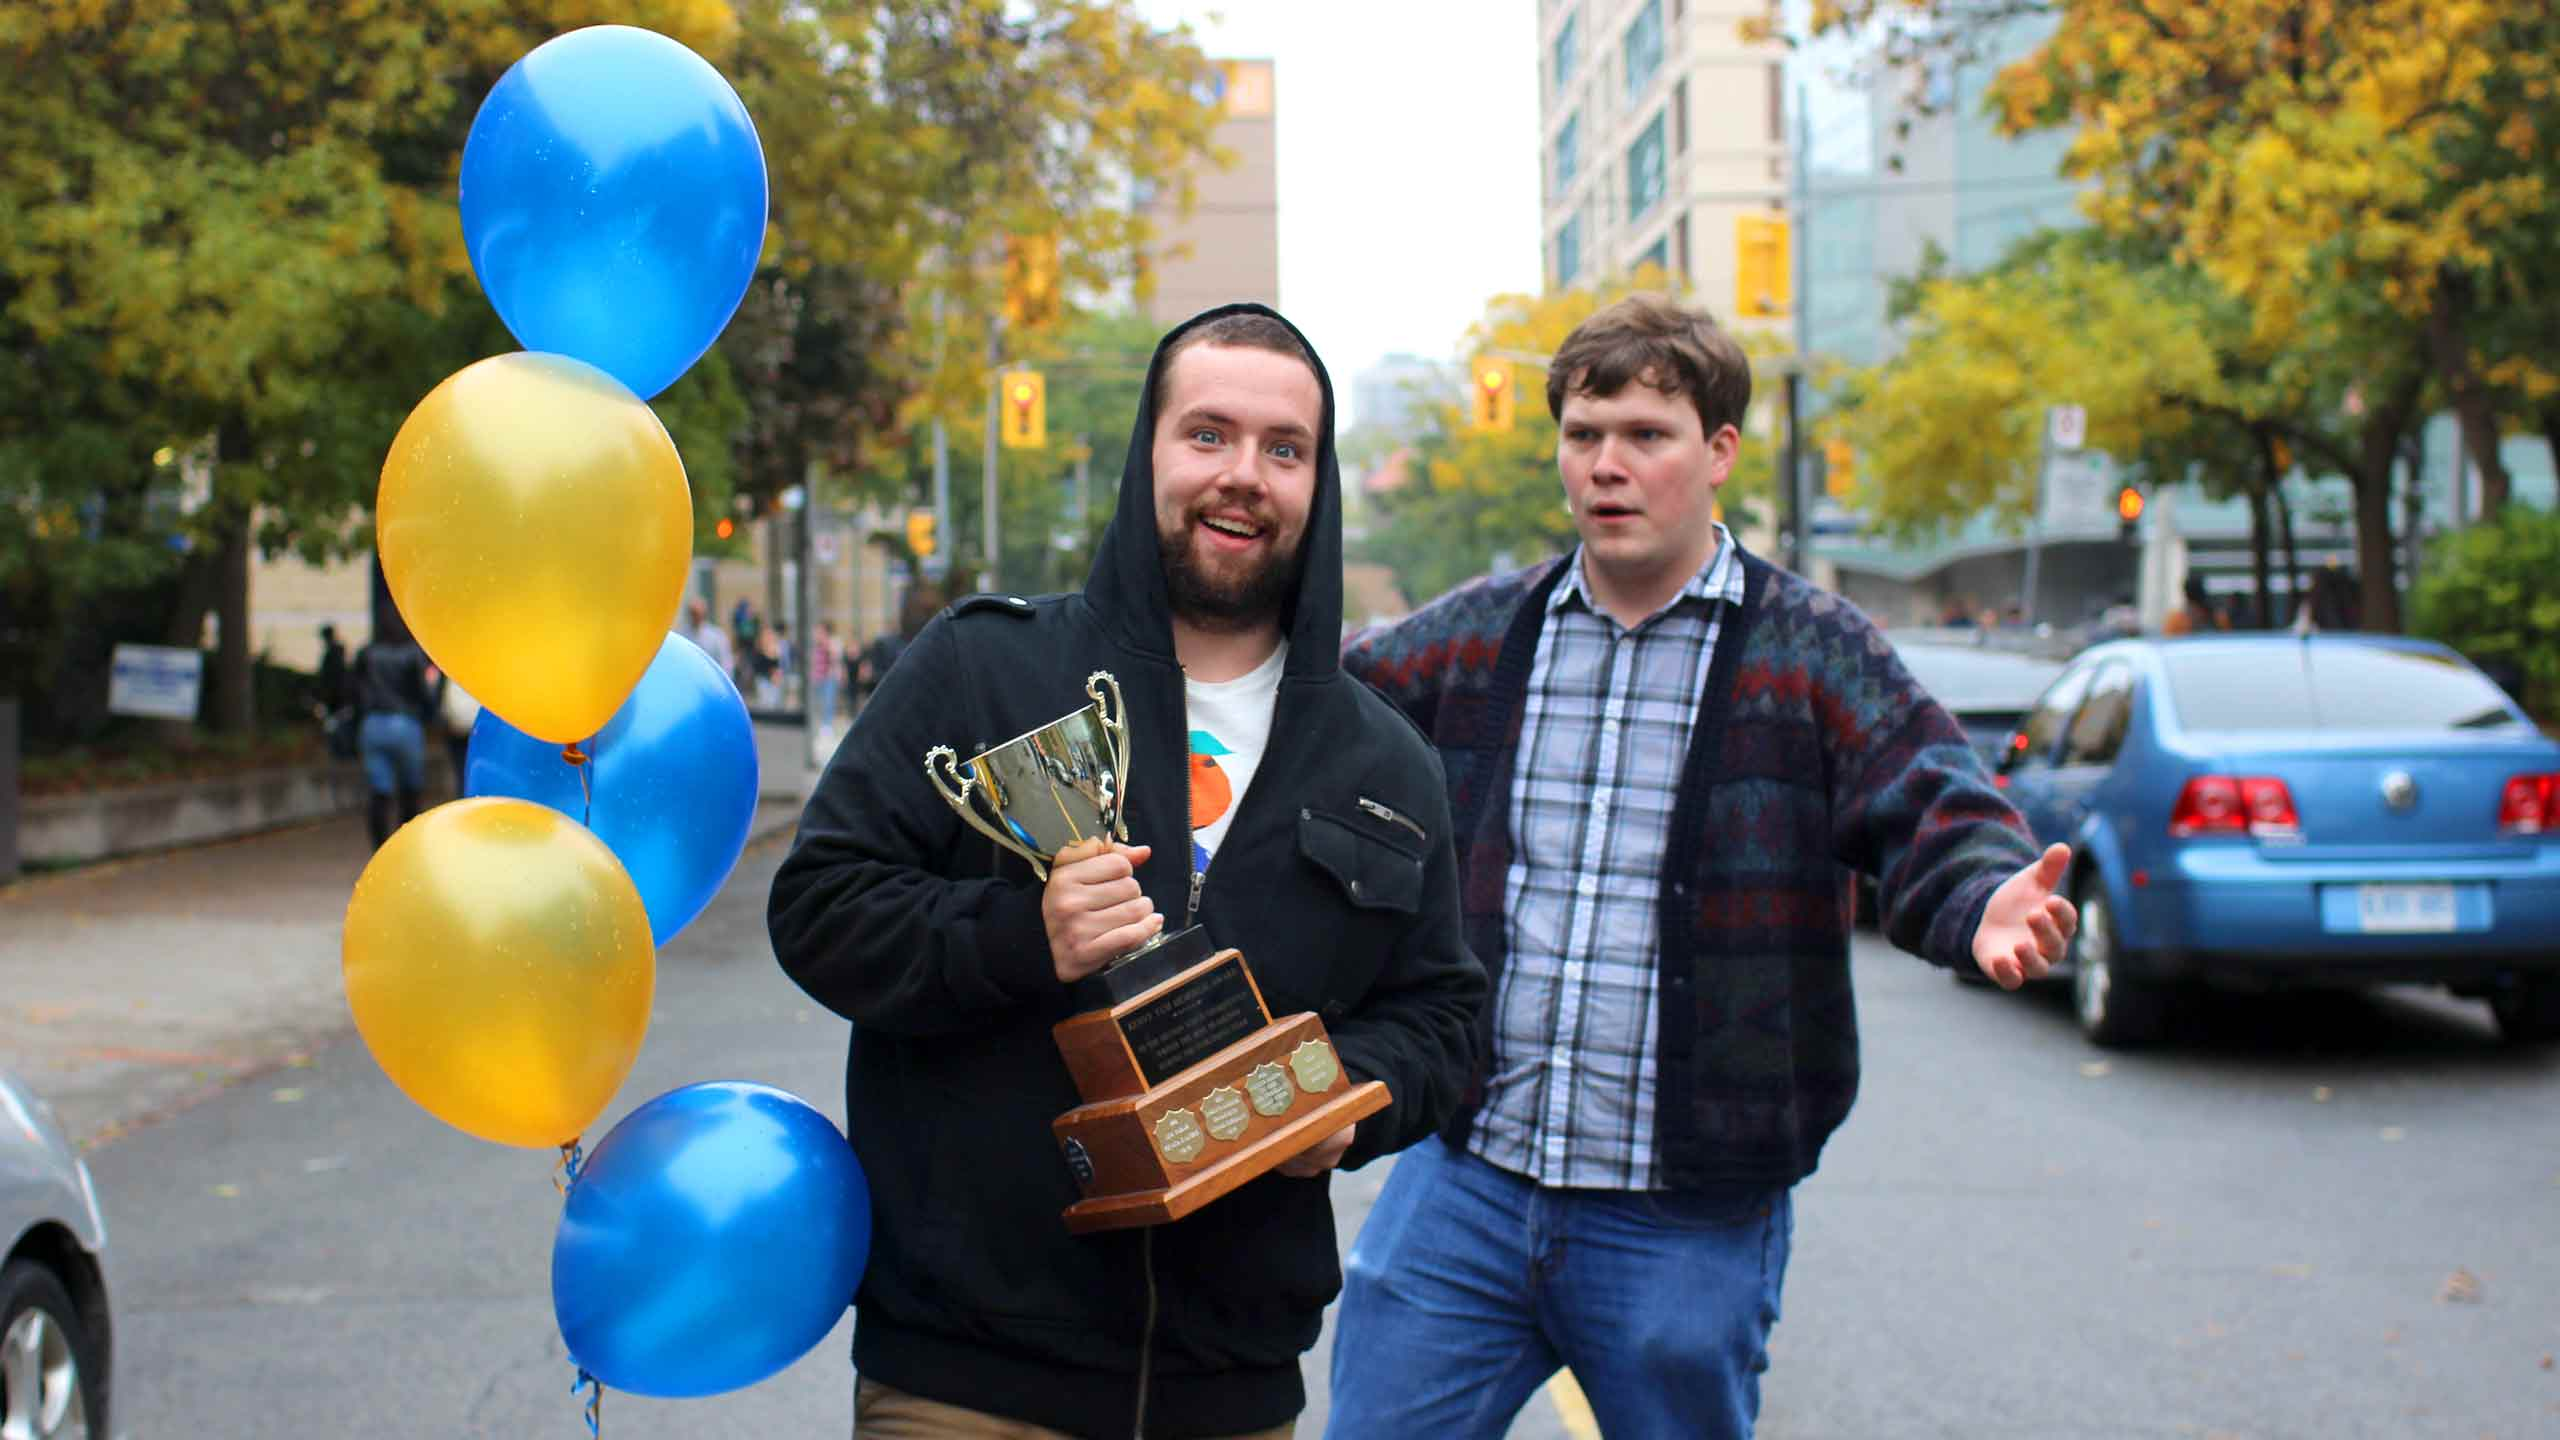 Cable and Kristoff after the winner of the Cardi-Get-It-On contest was announced. PHOTO: CHRIS BLANCHETTE